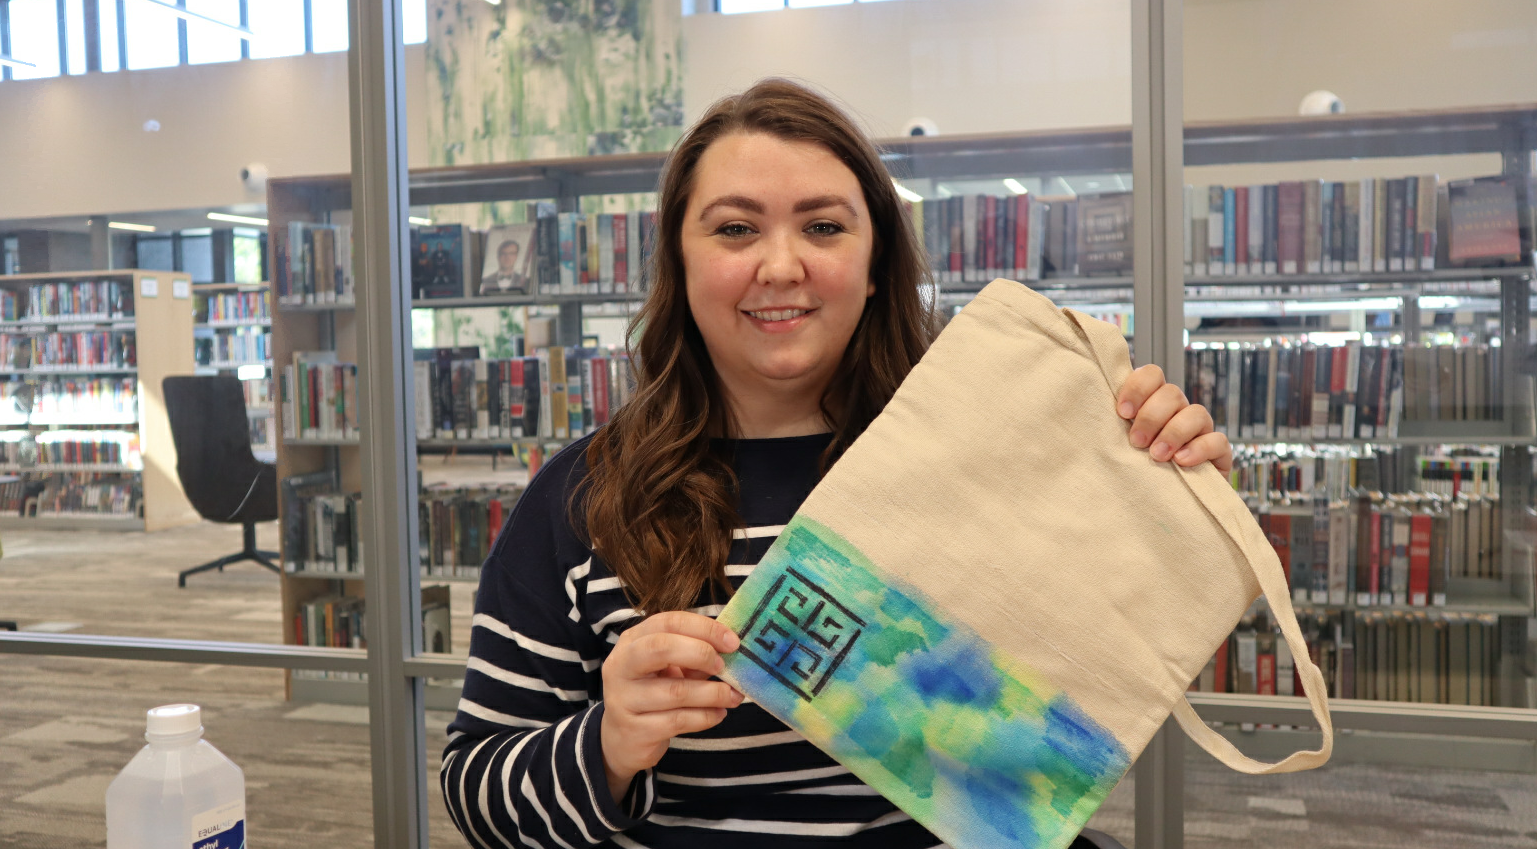 Woman holding a tie-dyed bag.